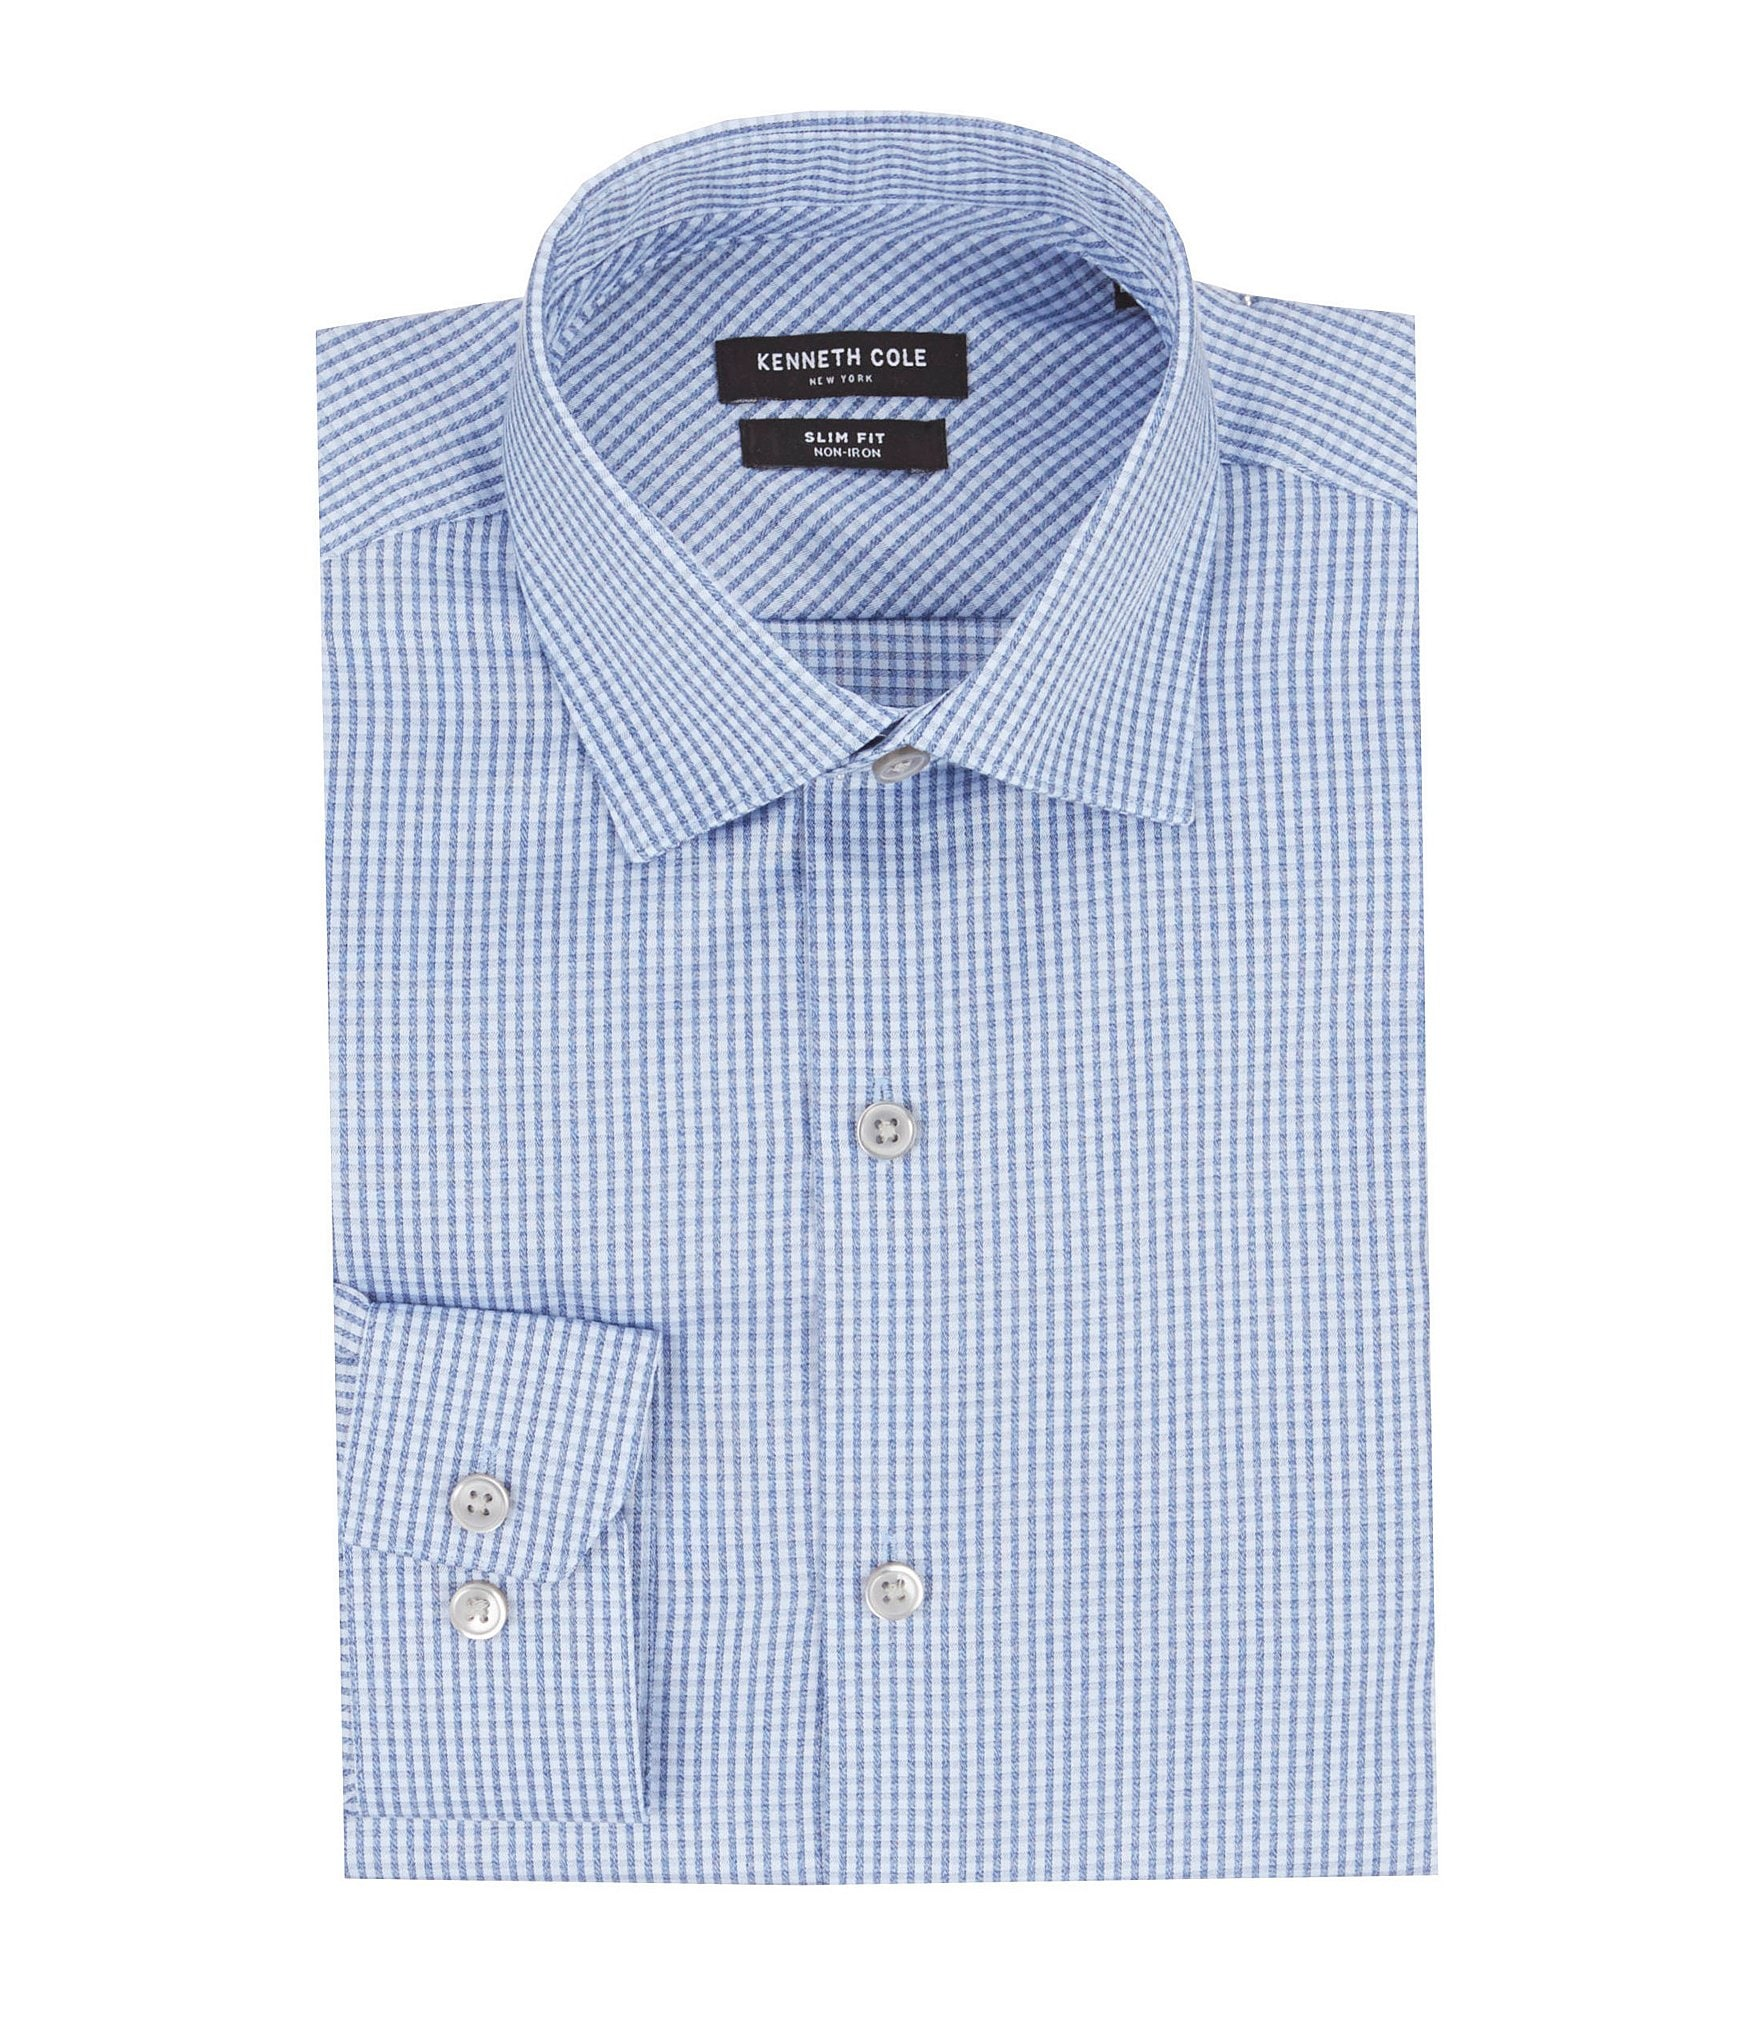 Kenneth cole new york non iron slim fit spread collar for New york and company dress shirts